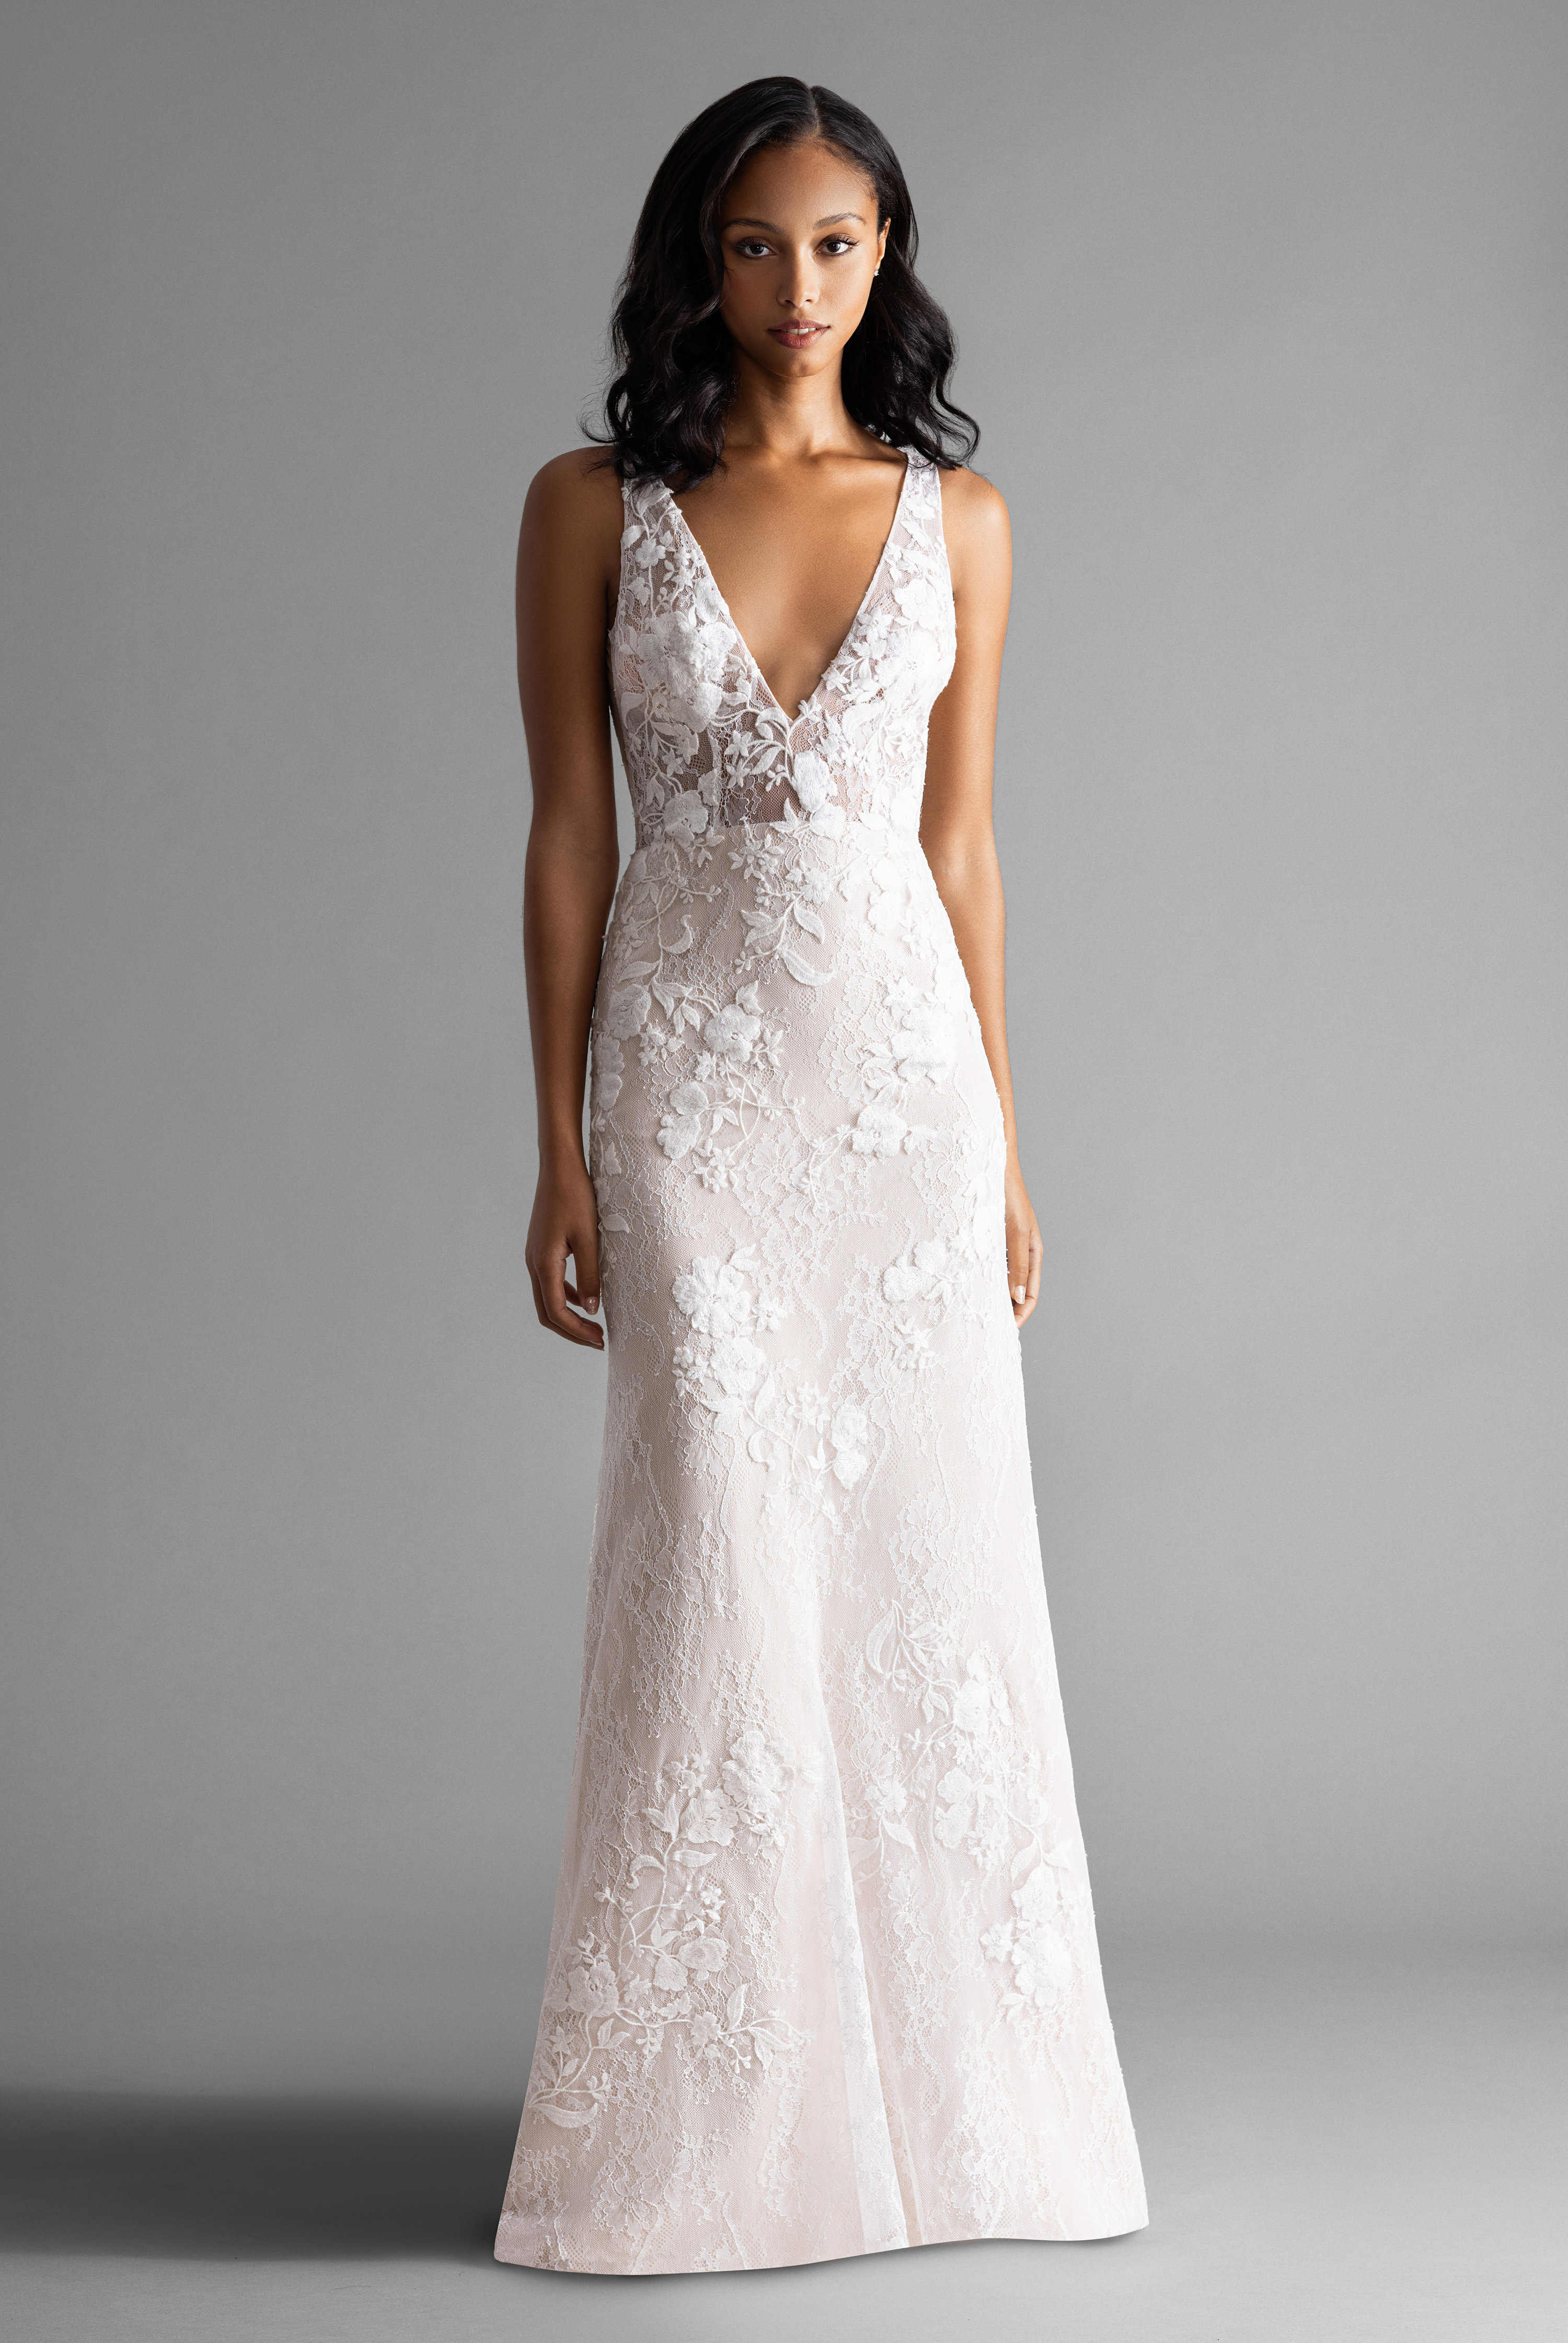 Bridal Gowns And Wedding Dresses By Jlm Couture Style 7900 Devany